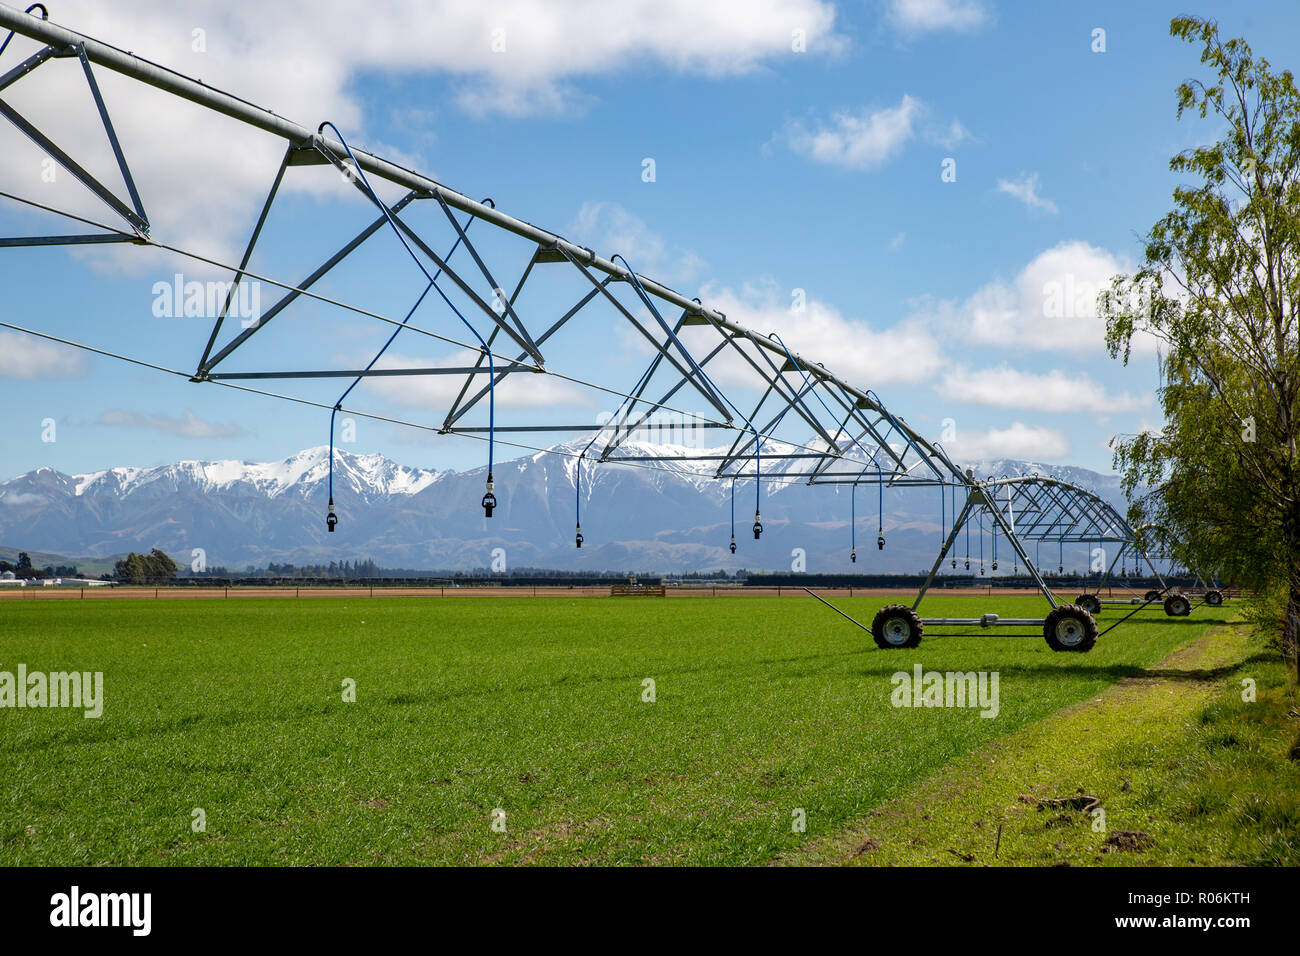 A central pivot irrigator set up on a rural farm in a large field ready to irrigate crops in springtime in New Zealand - Stock Image